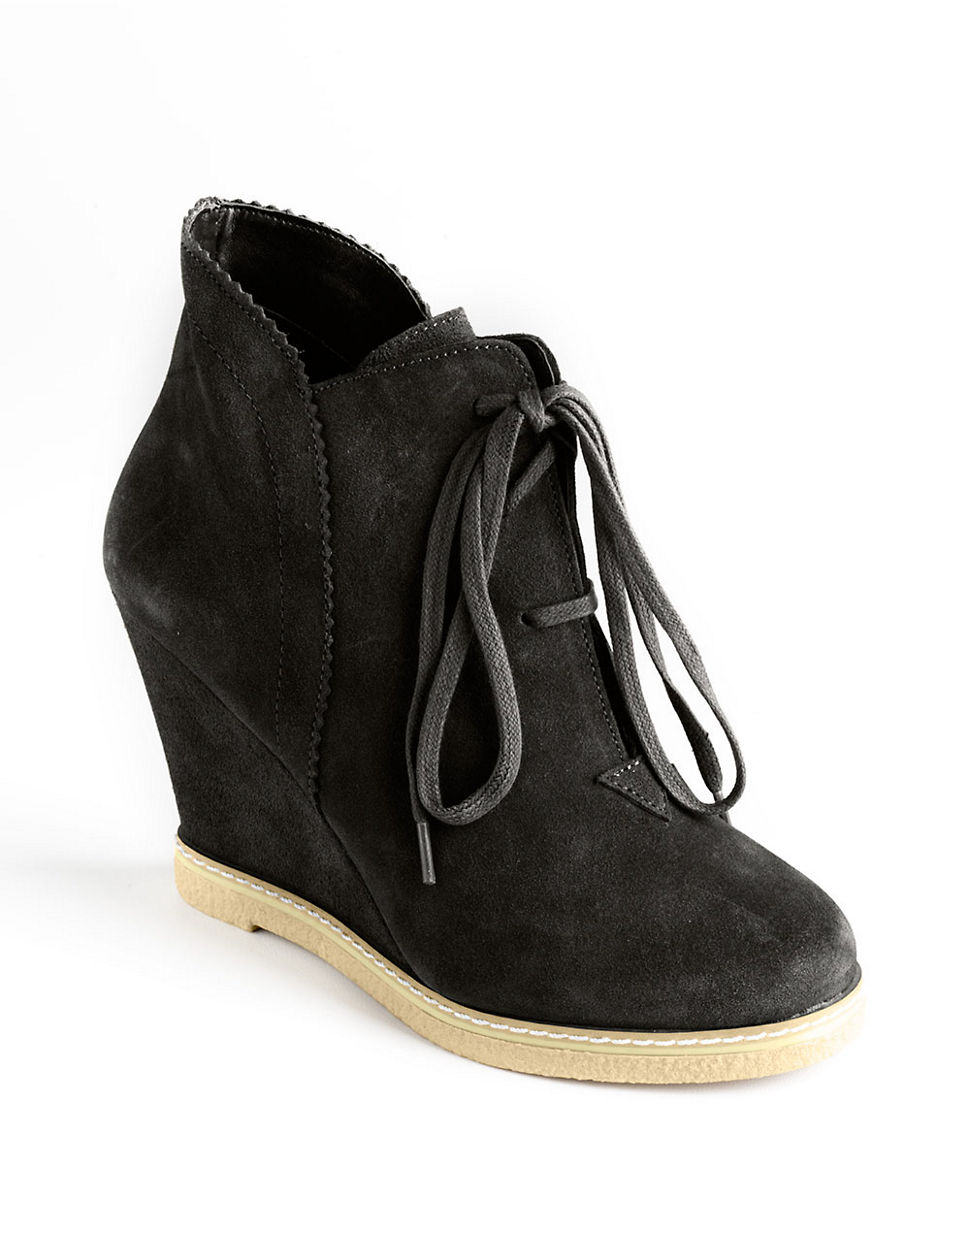 kelsi dagger helix laceup wedge boots in black black